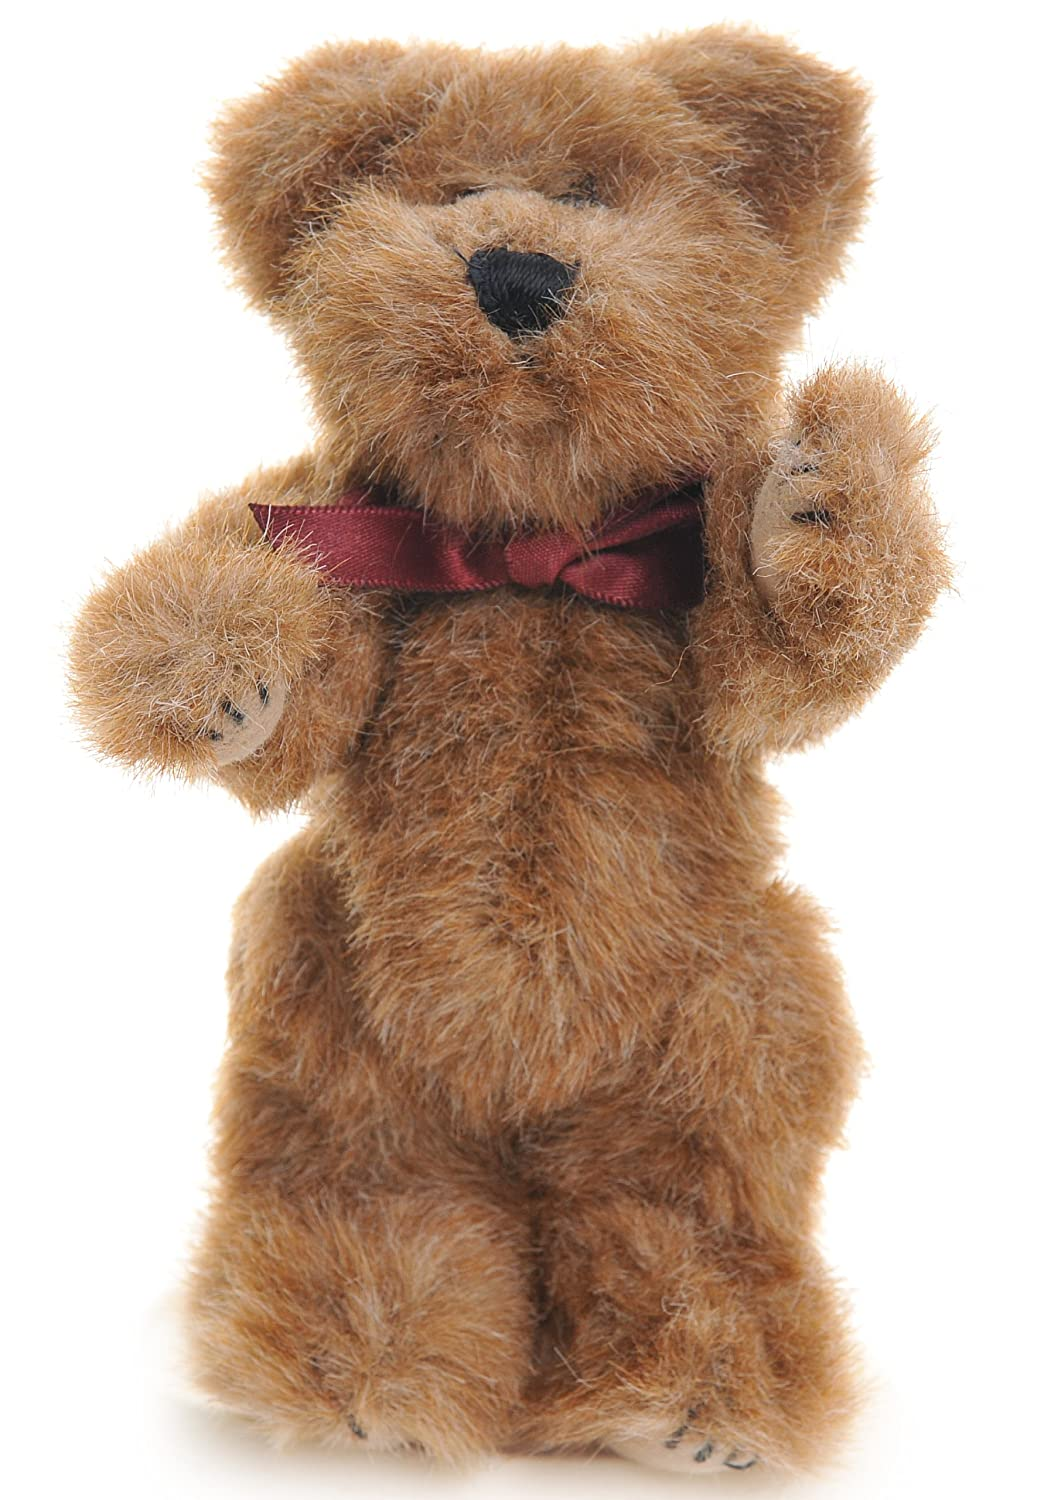 Neville 6 inch Jointed Braun plush bear by Boyds